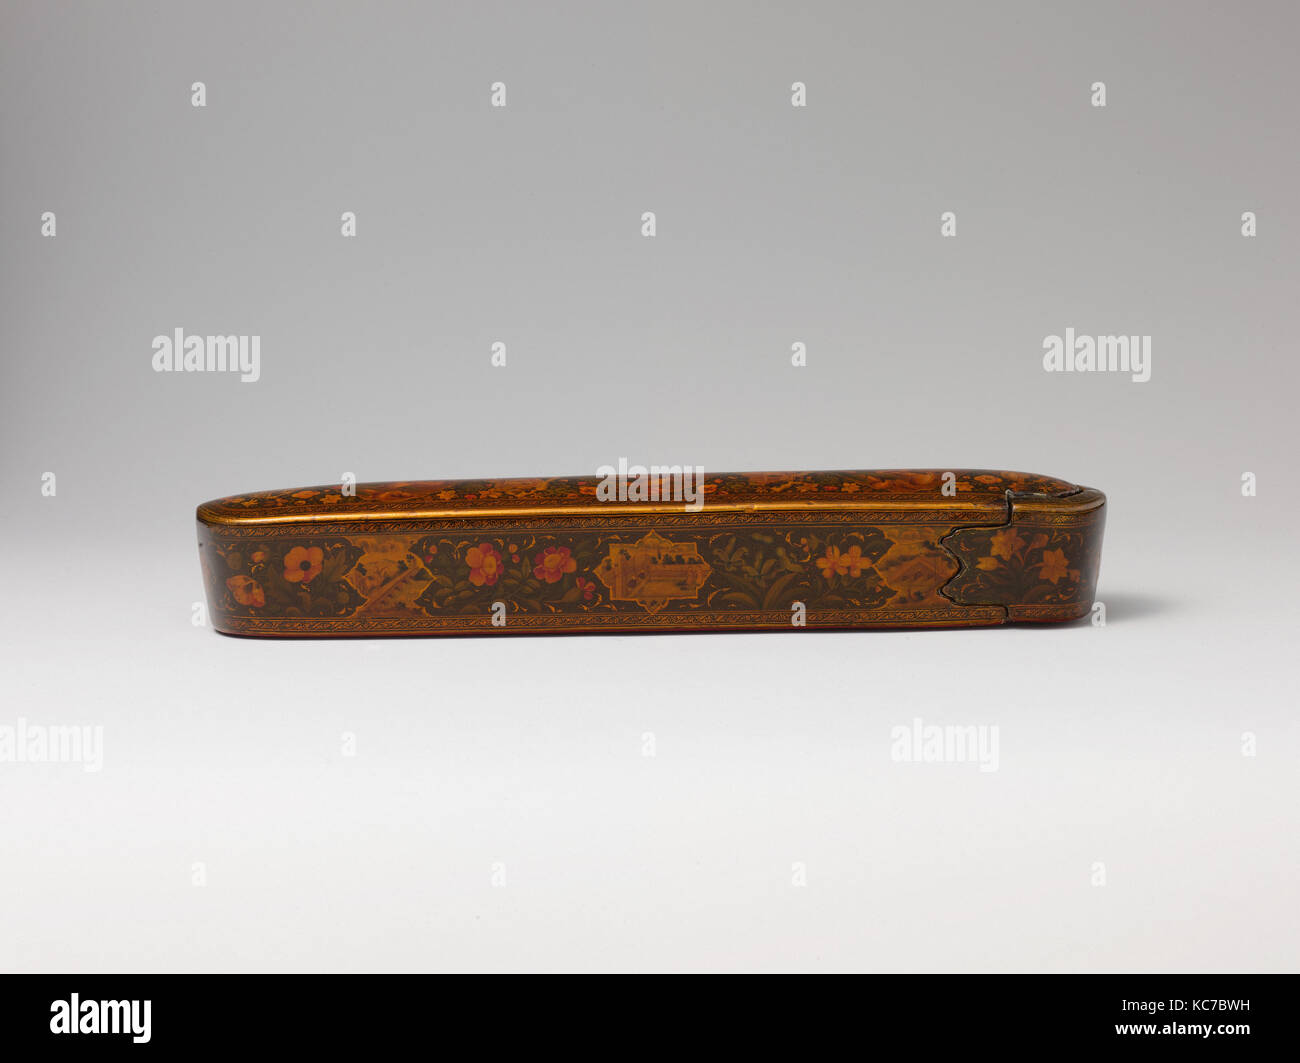 Pen Box with Architectural Cartouches, Ali Ashraf, dated A.H. 1156/ A.D. 1743 Stock Photo